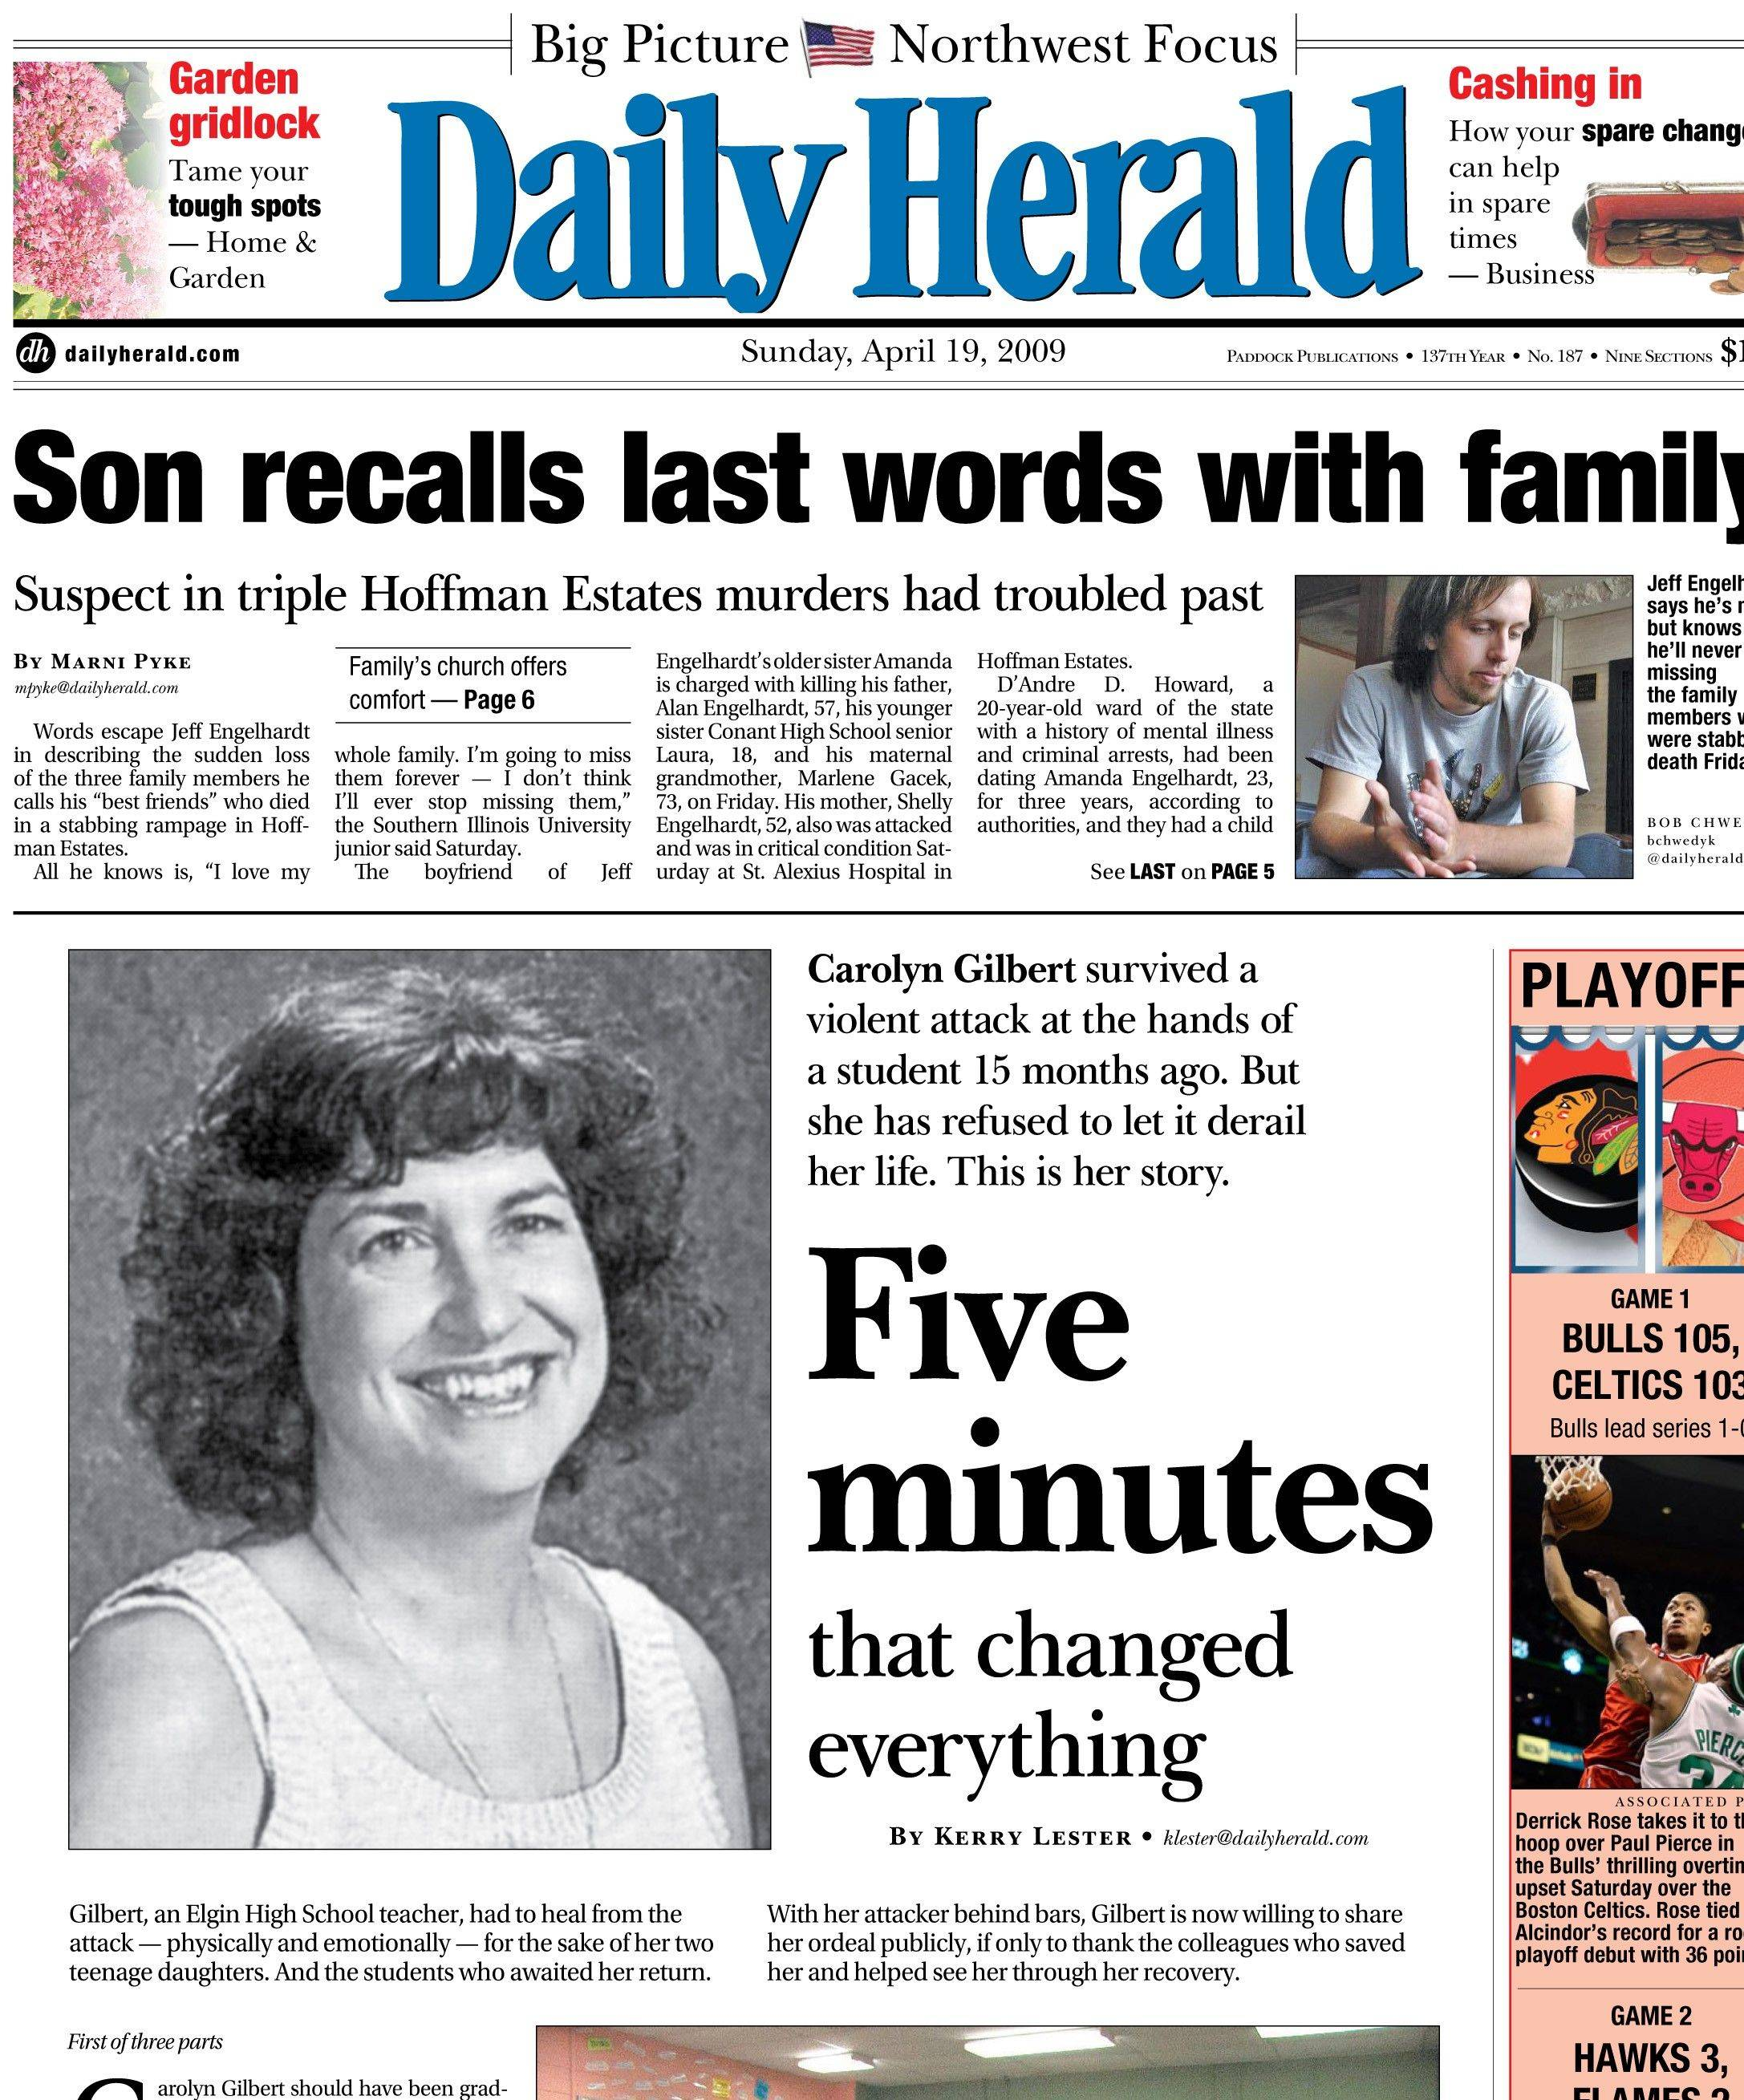 The Daily Herald first profiled the attack, recovery and return to teaching of Elgin High teacher Carolyn Gilbert in a three-day series in April 2009.""